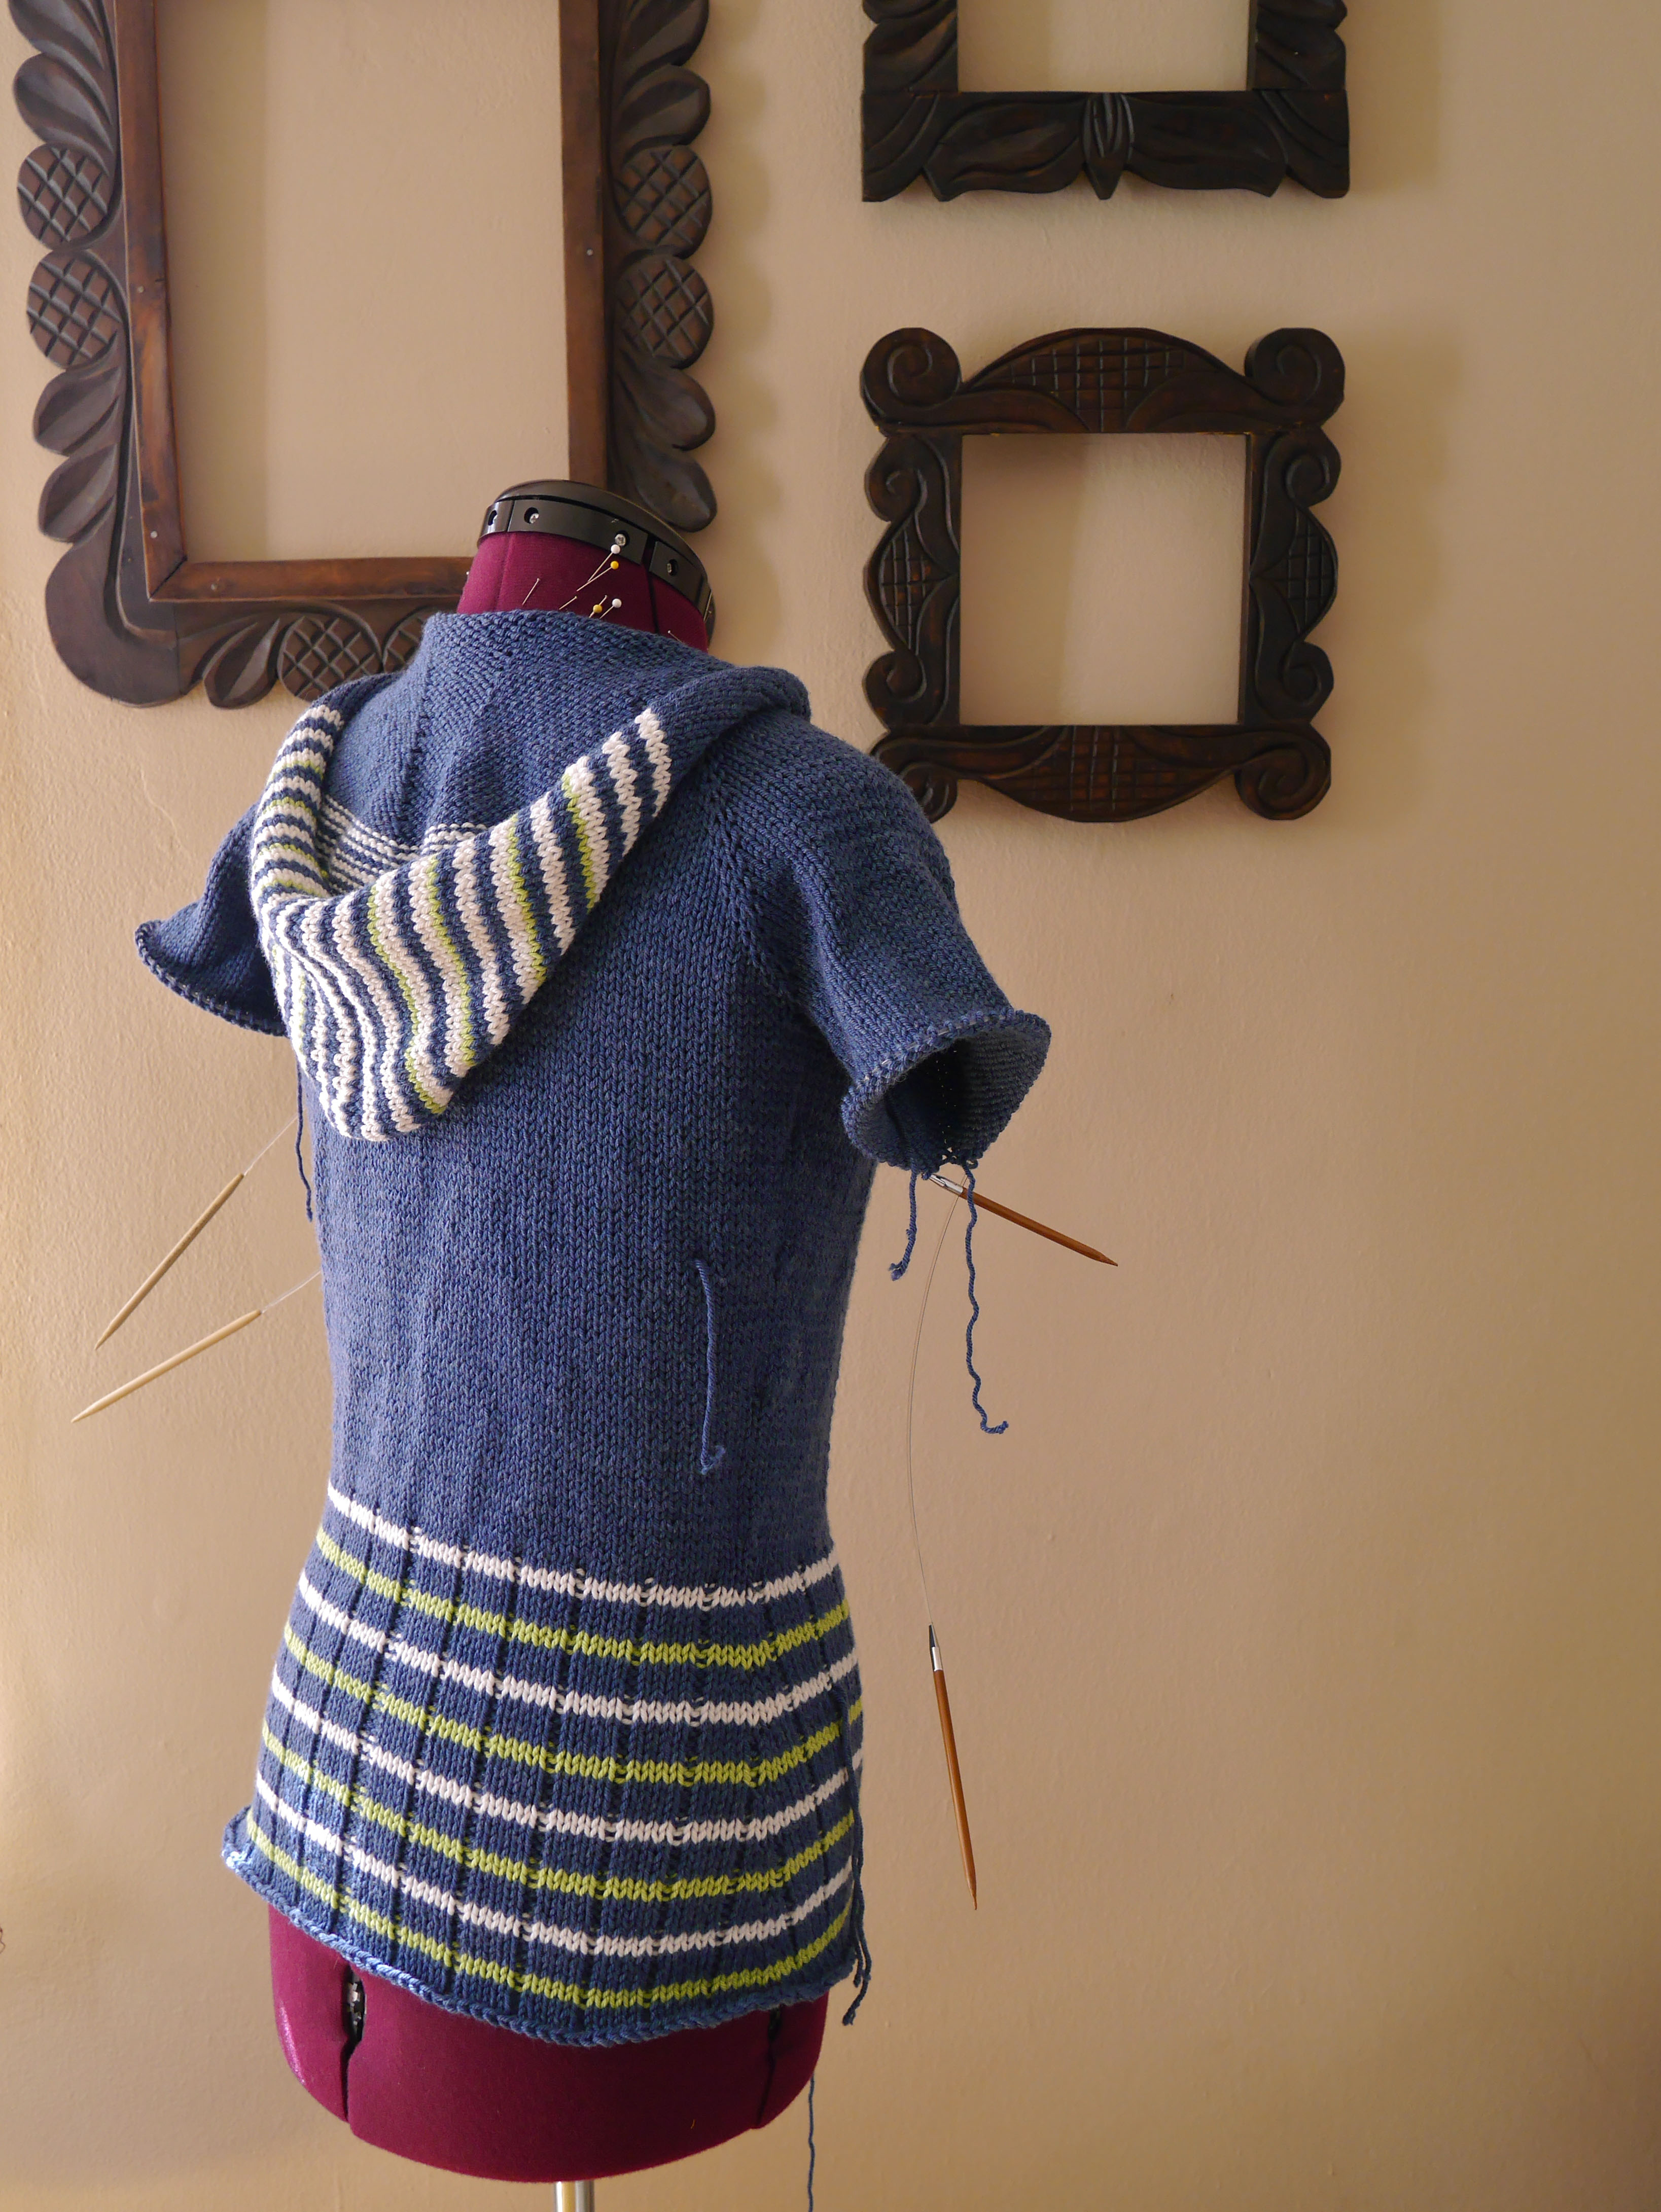 Holly Chayes » A sweater that took 3 years to knit. And some ...